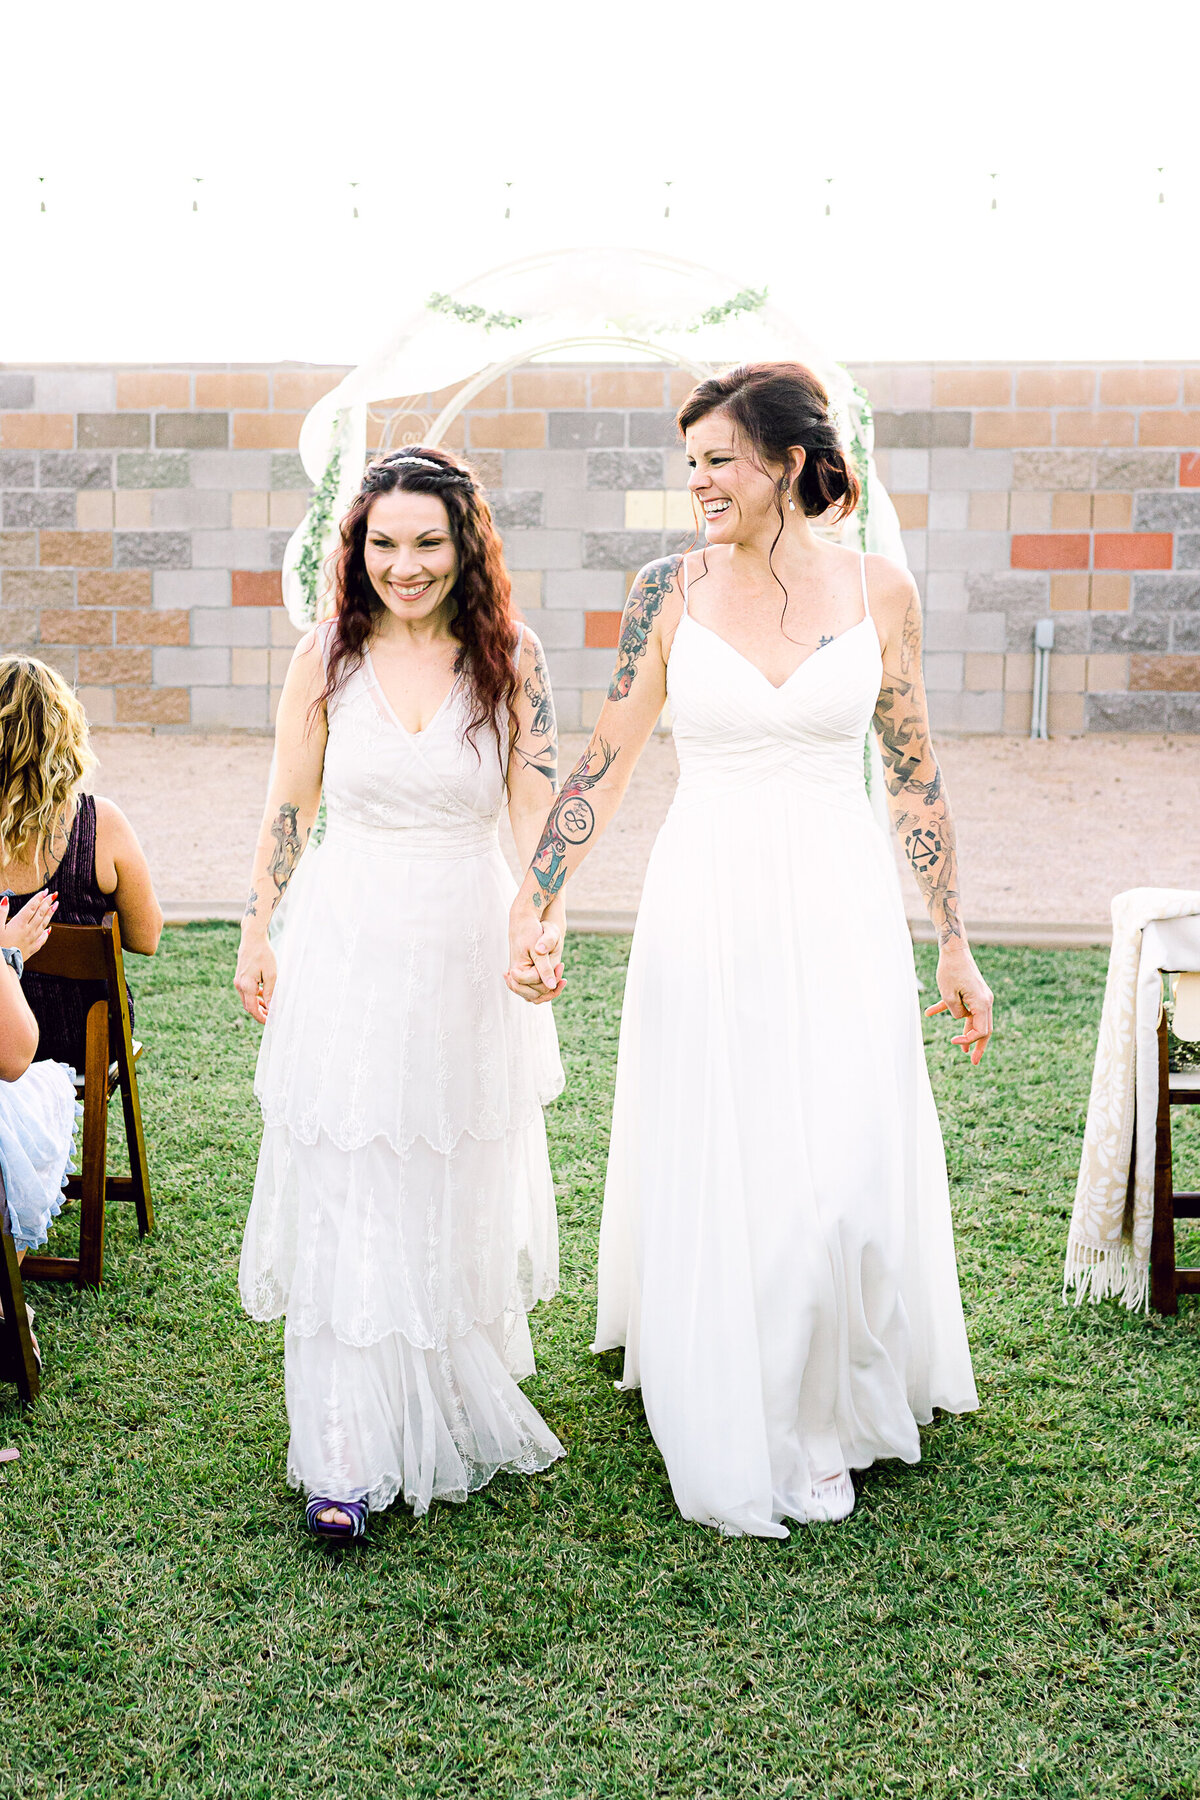 Lesbian Wedding - Phoenix Wedding Photographer - Atlas Rose Photography AZ02